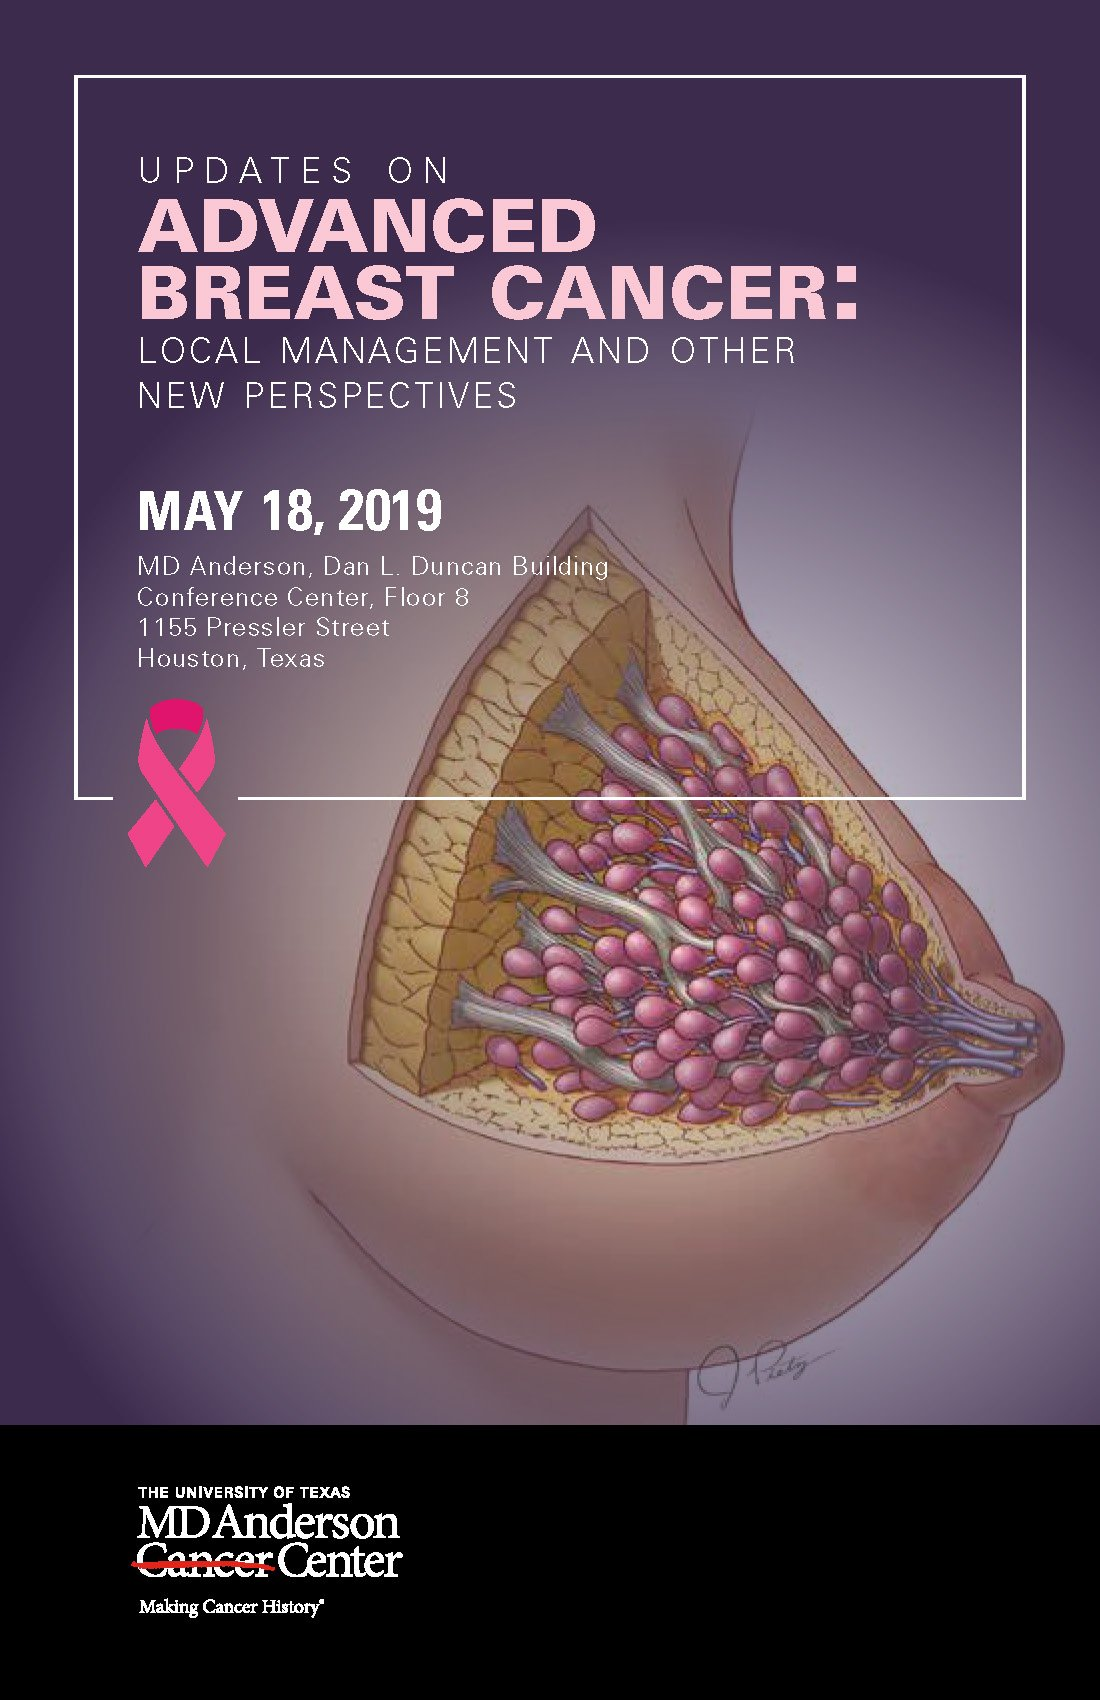 Updates On Advanced Breast Cancer: Local Management And